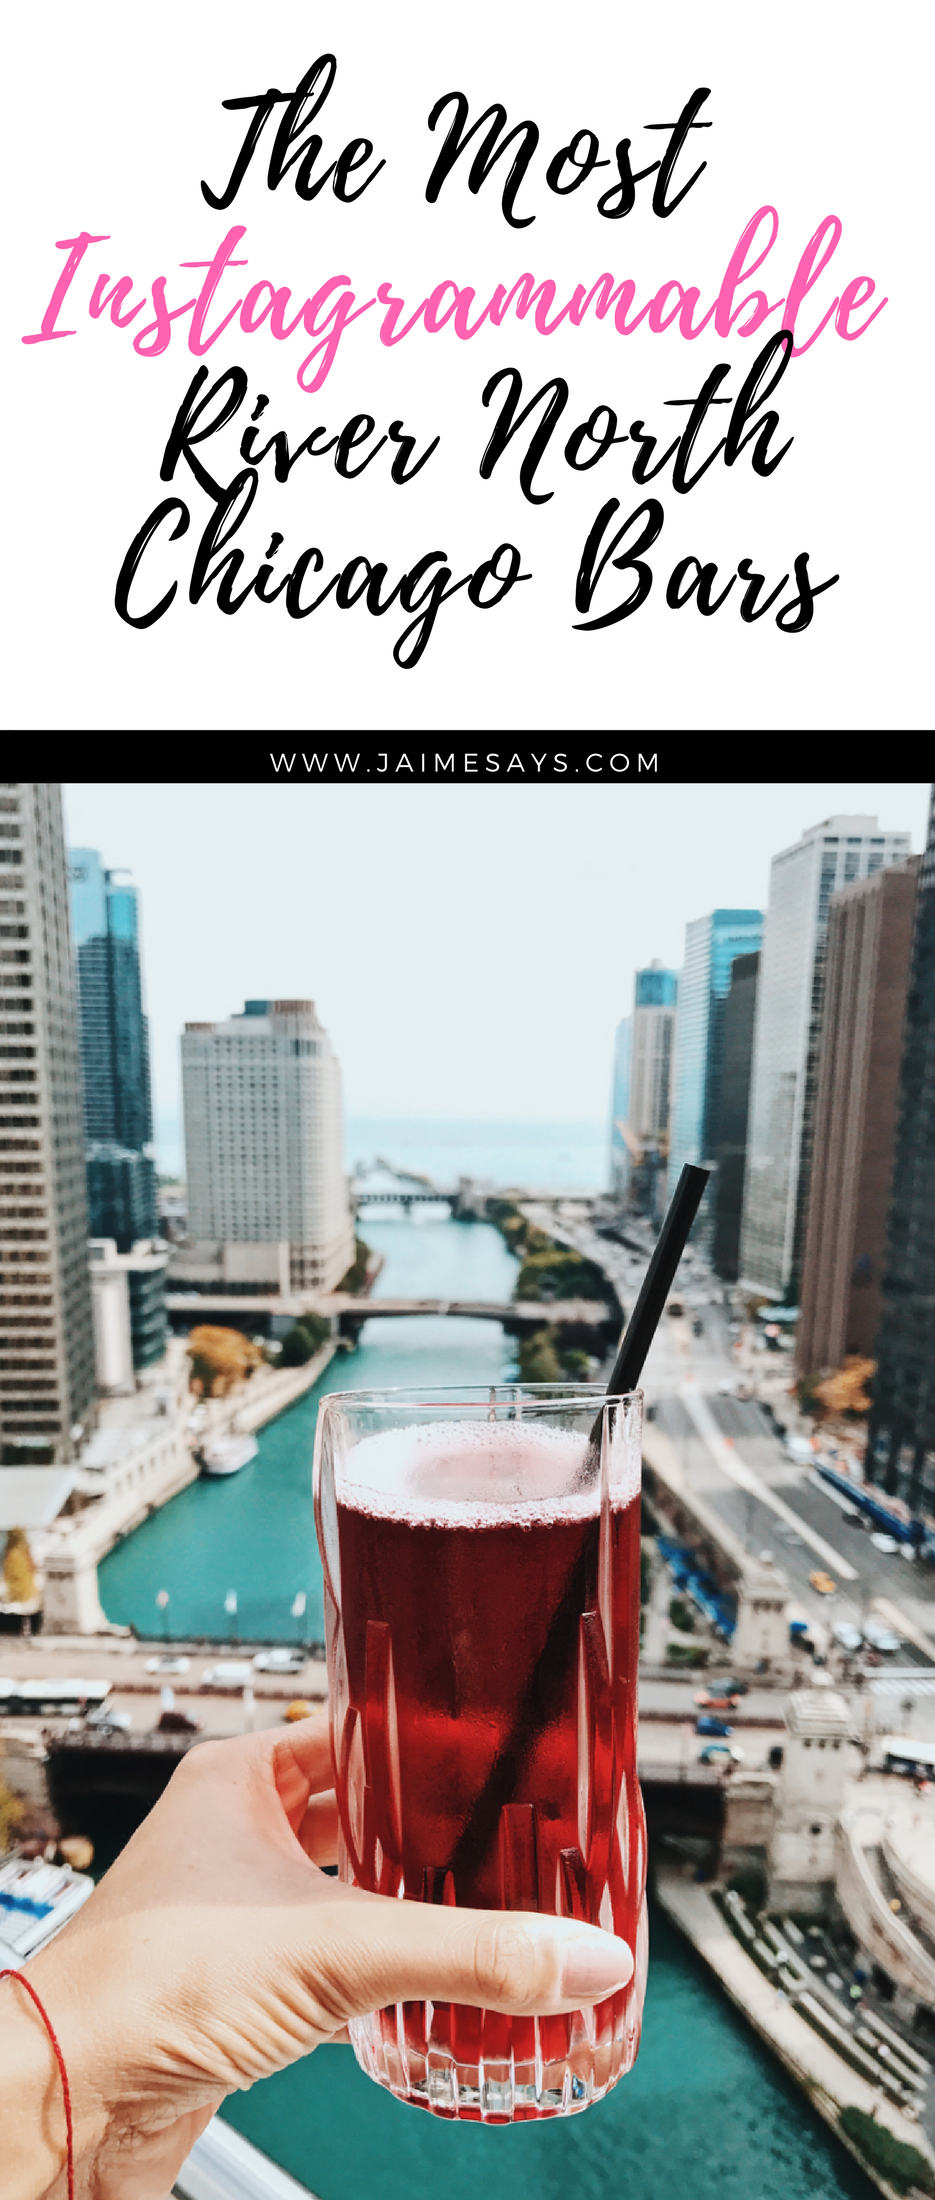 The most instagrammable River North Chicago bars | These are the most picturesque and photo worthy River North Chicago bars | Rooftops and indoor spaces, these River North Chicago bars are worth a visit on your next trip to #Chicago #Illinois USA